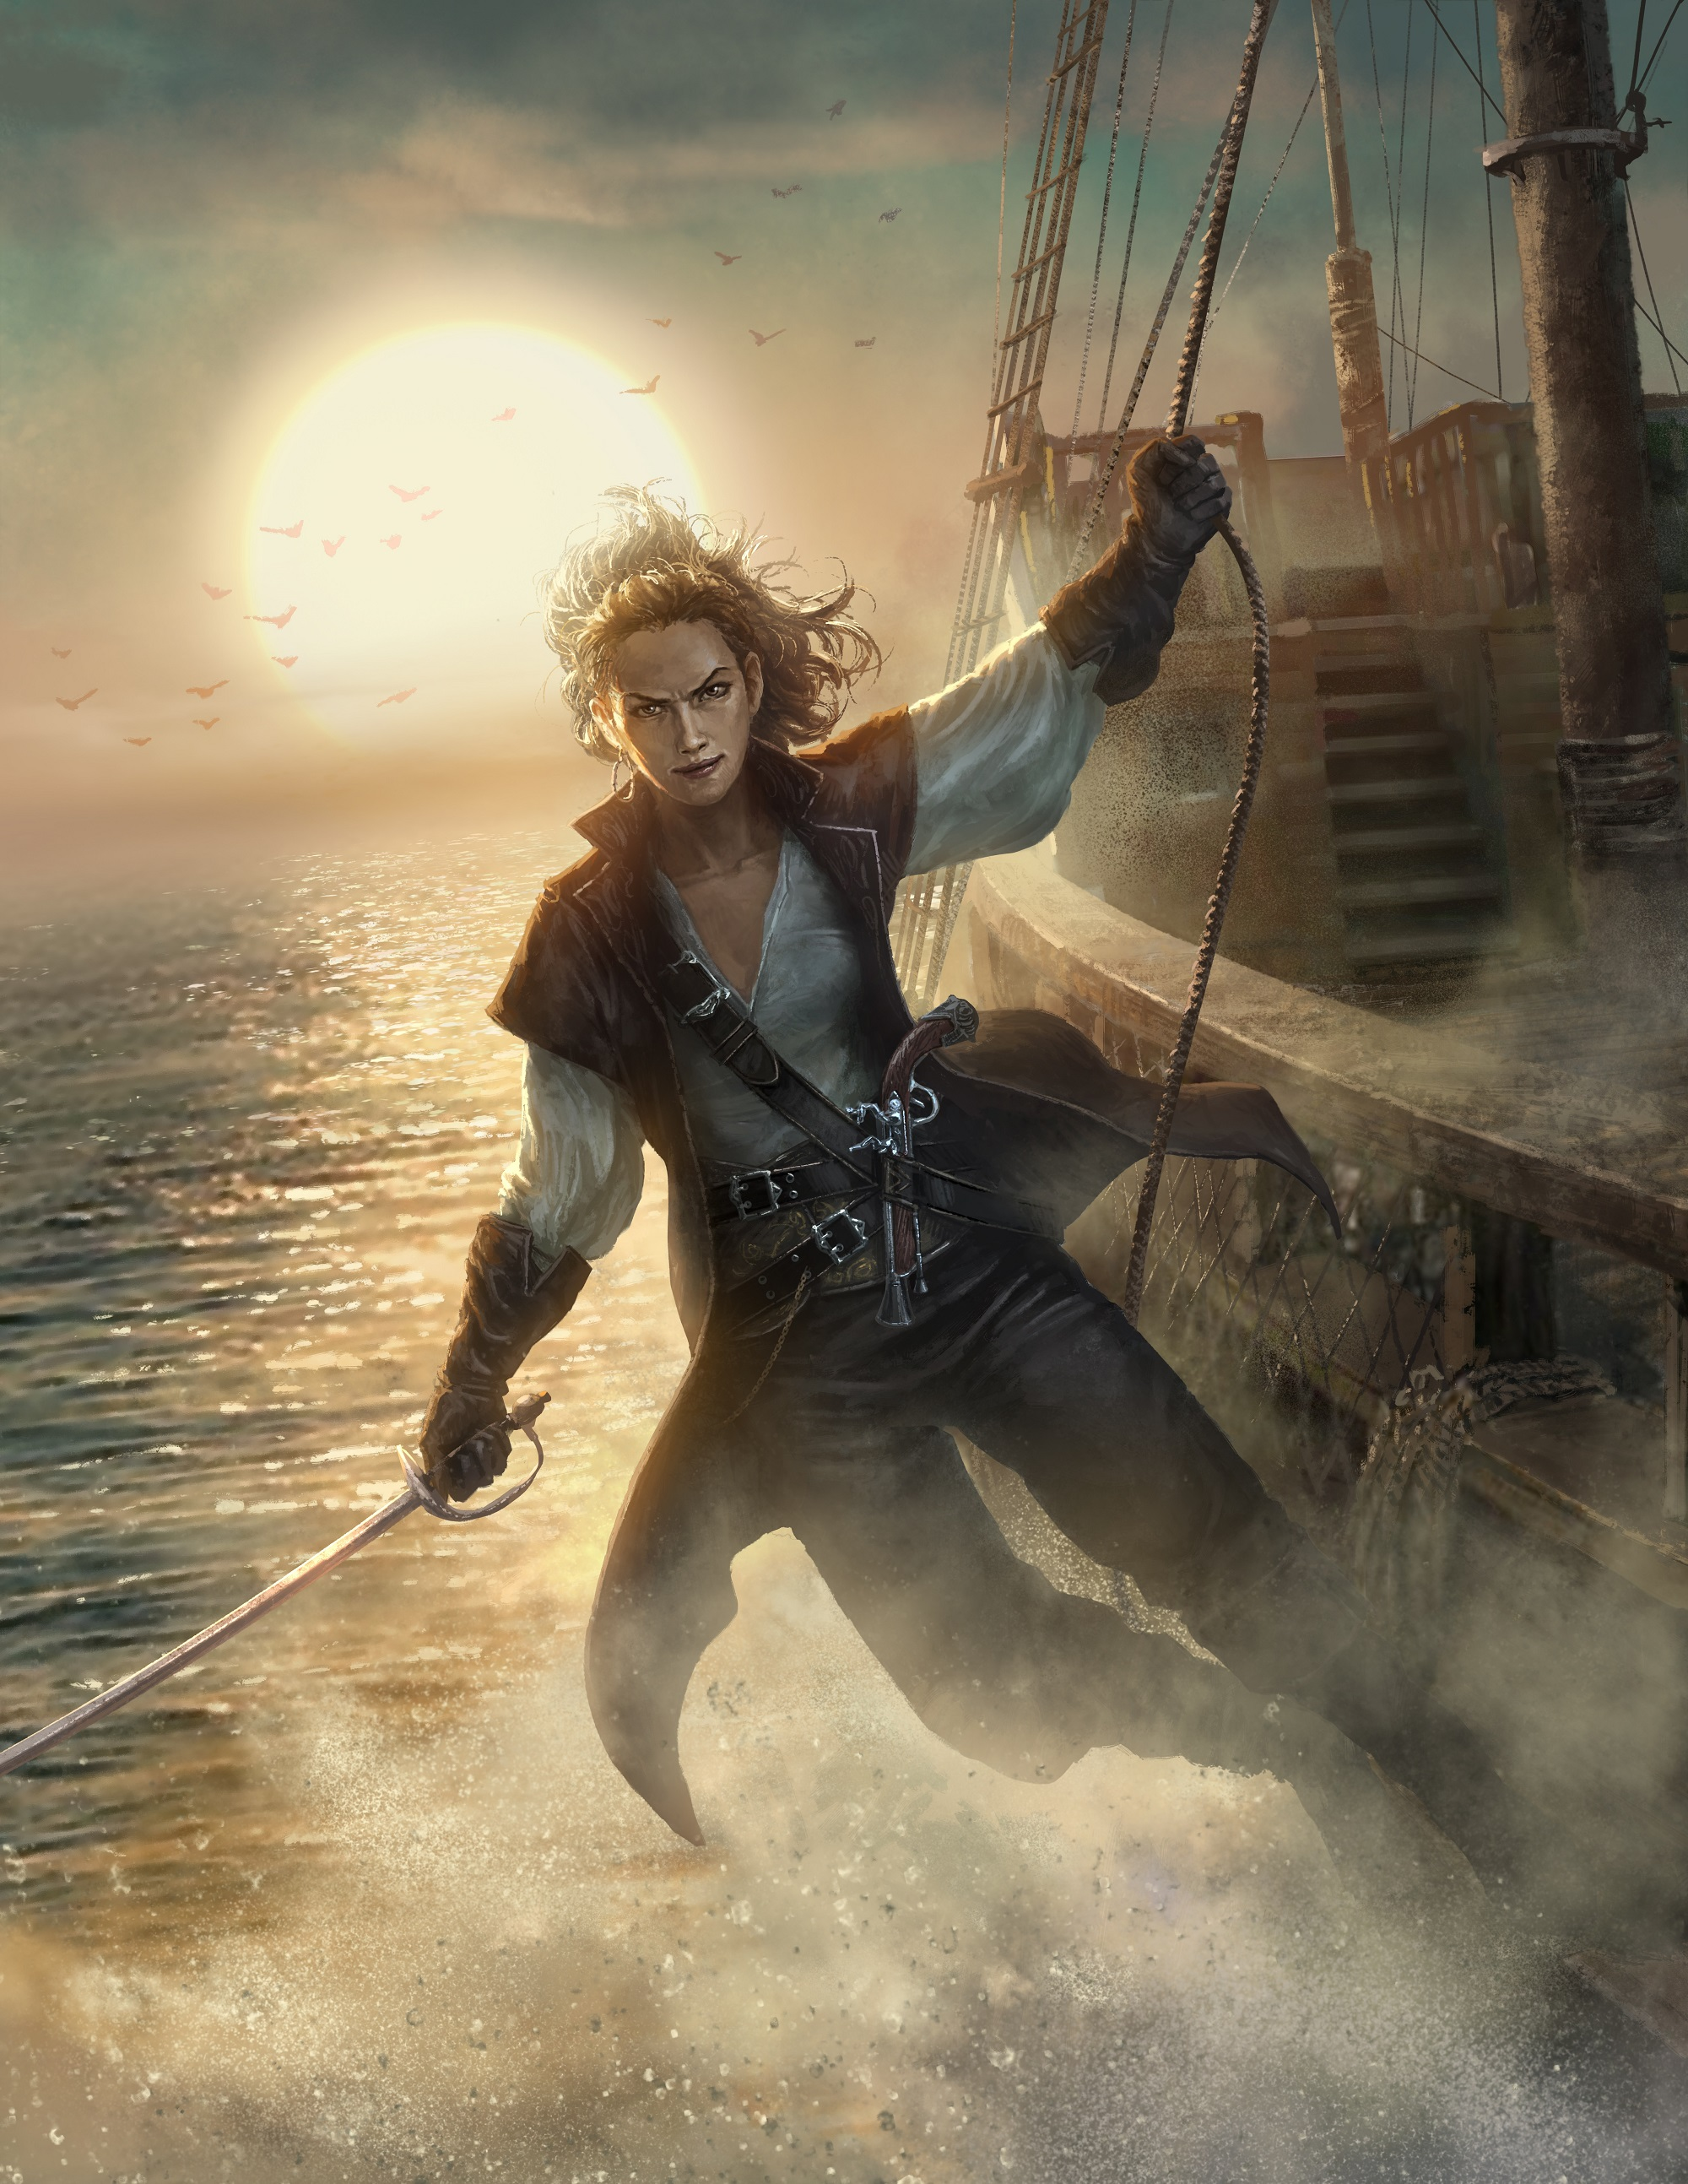 Image result for 7th sea, image